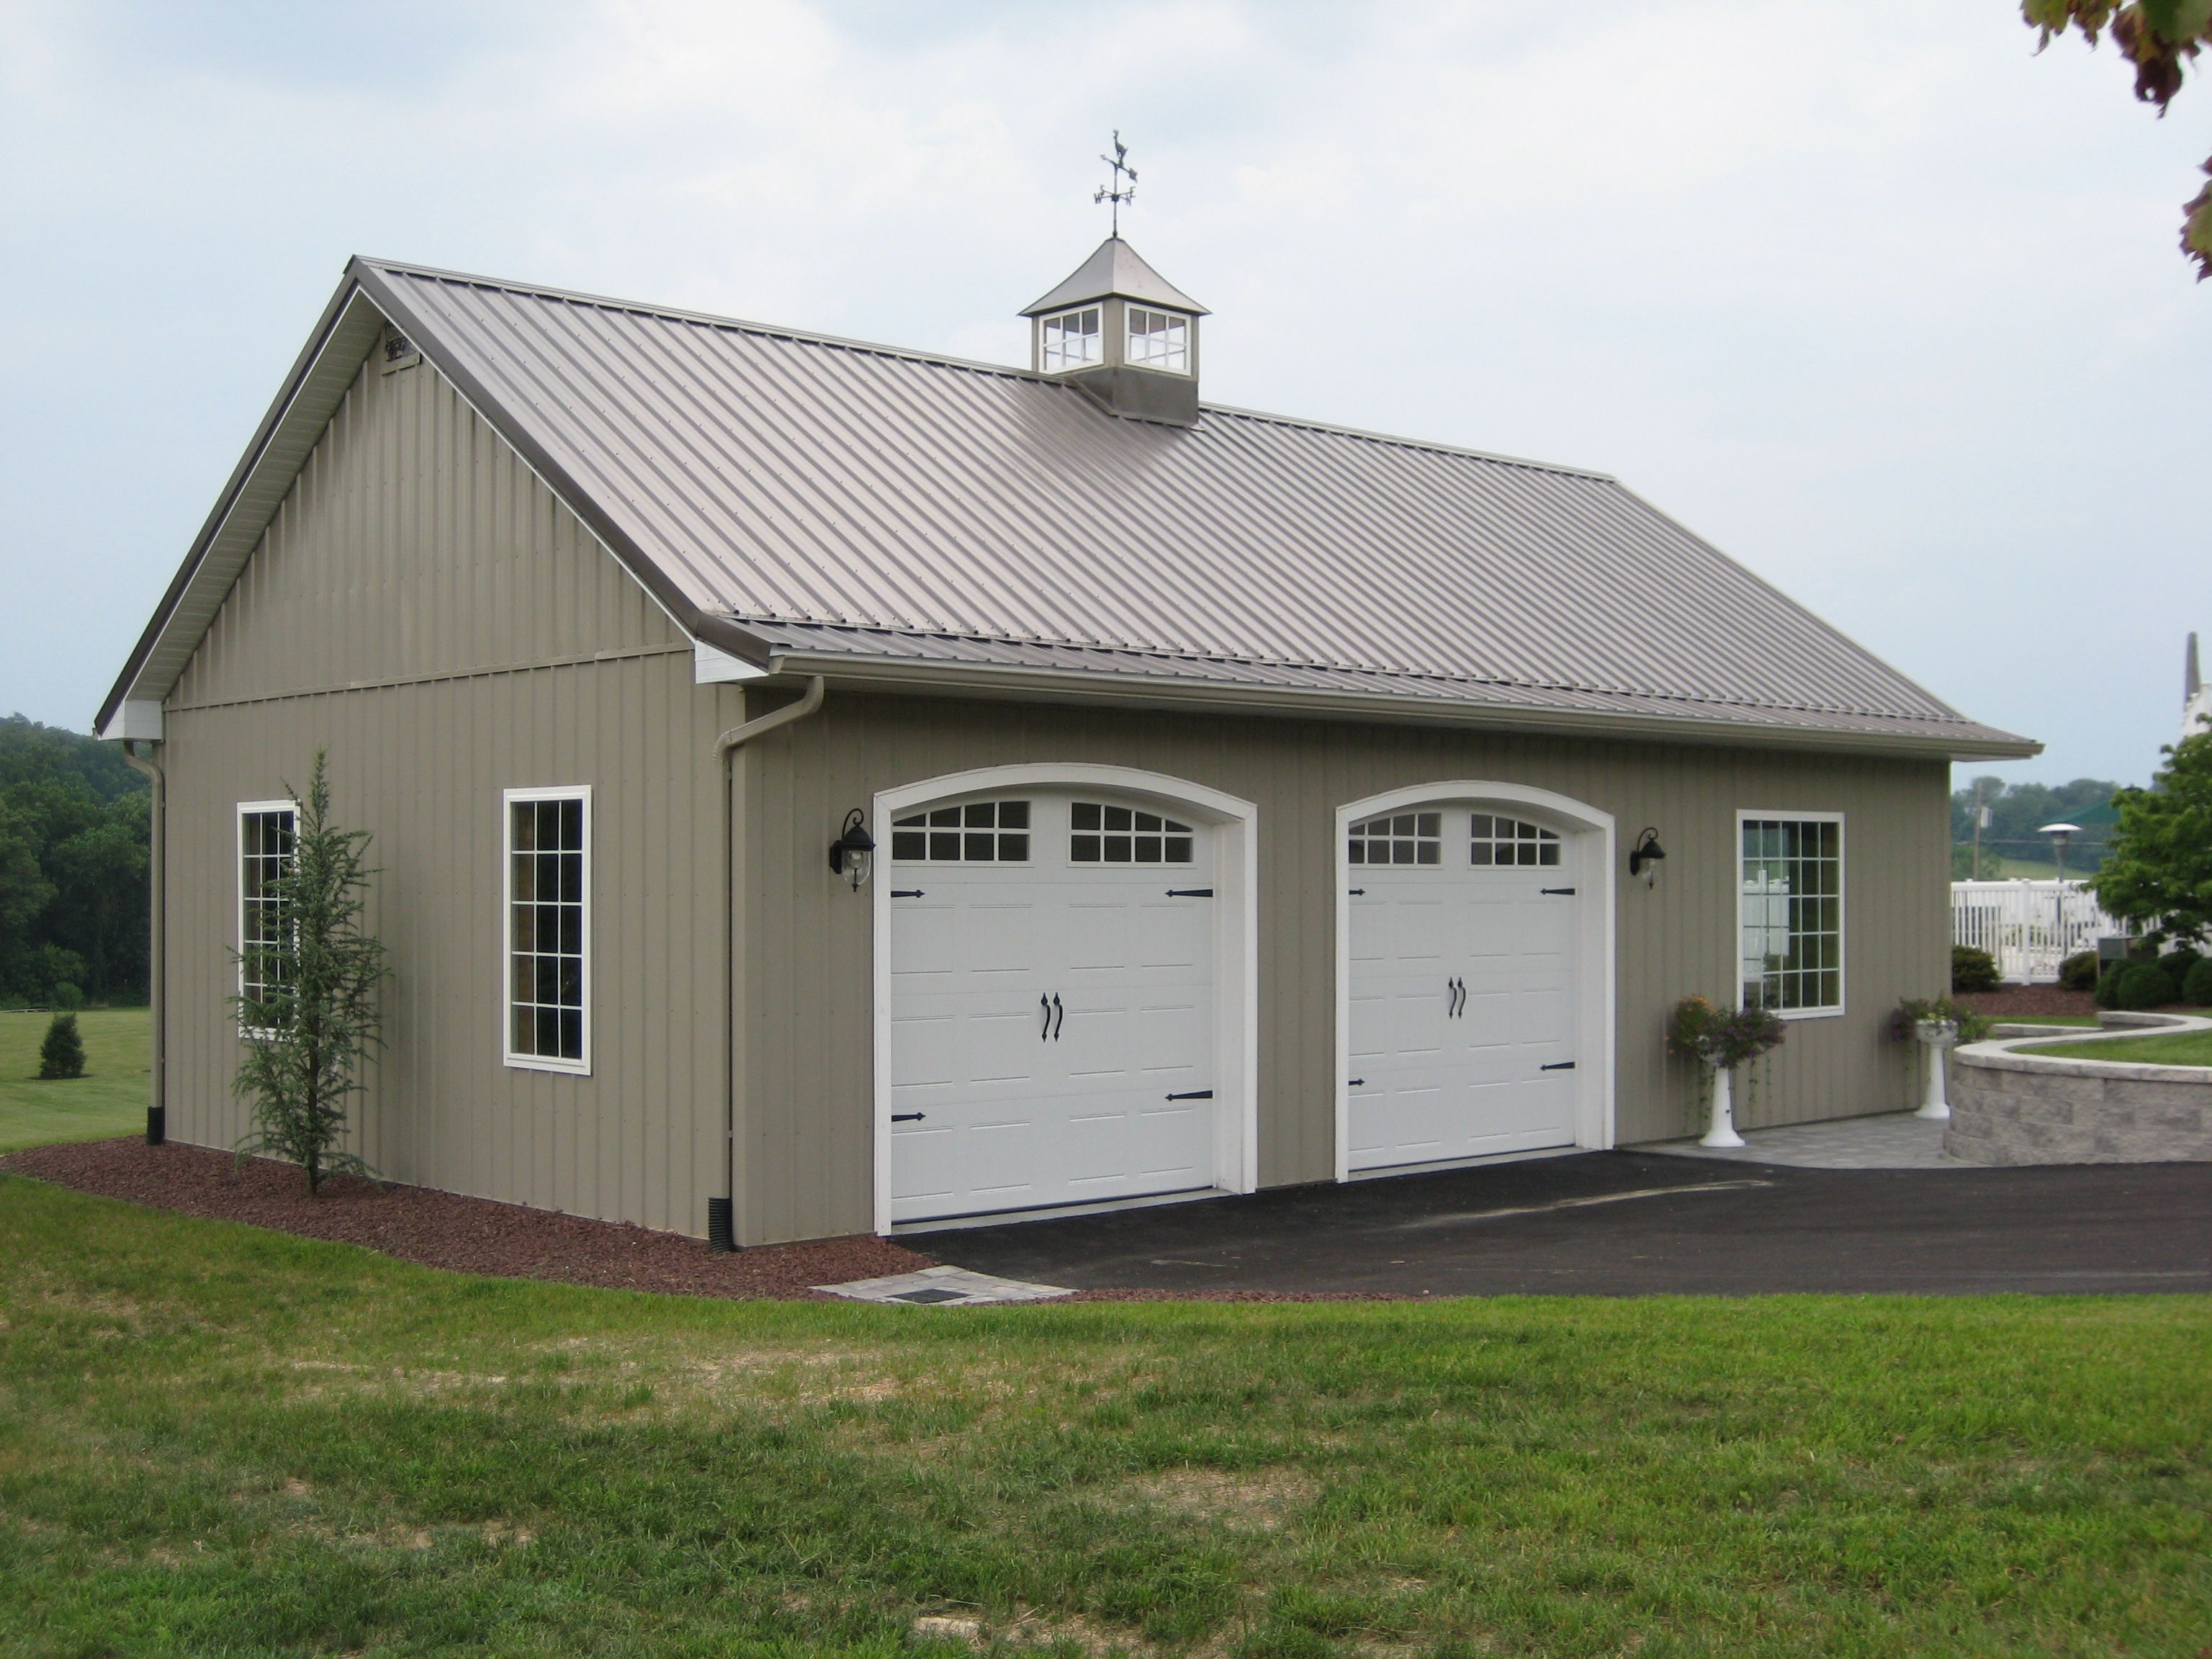 pole building garage ideas - Best 25 Pole barn garage ideas on Pinterest